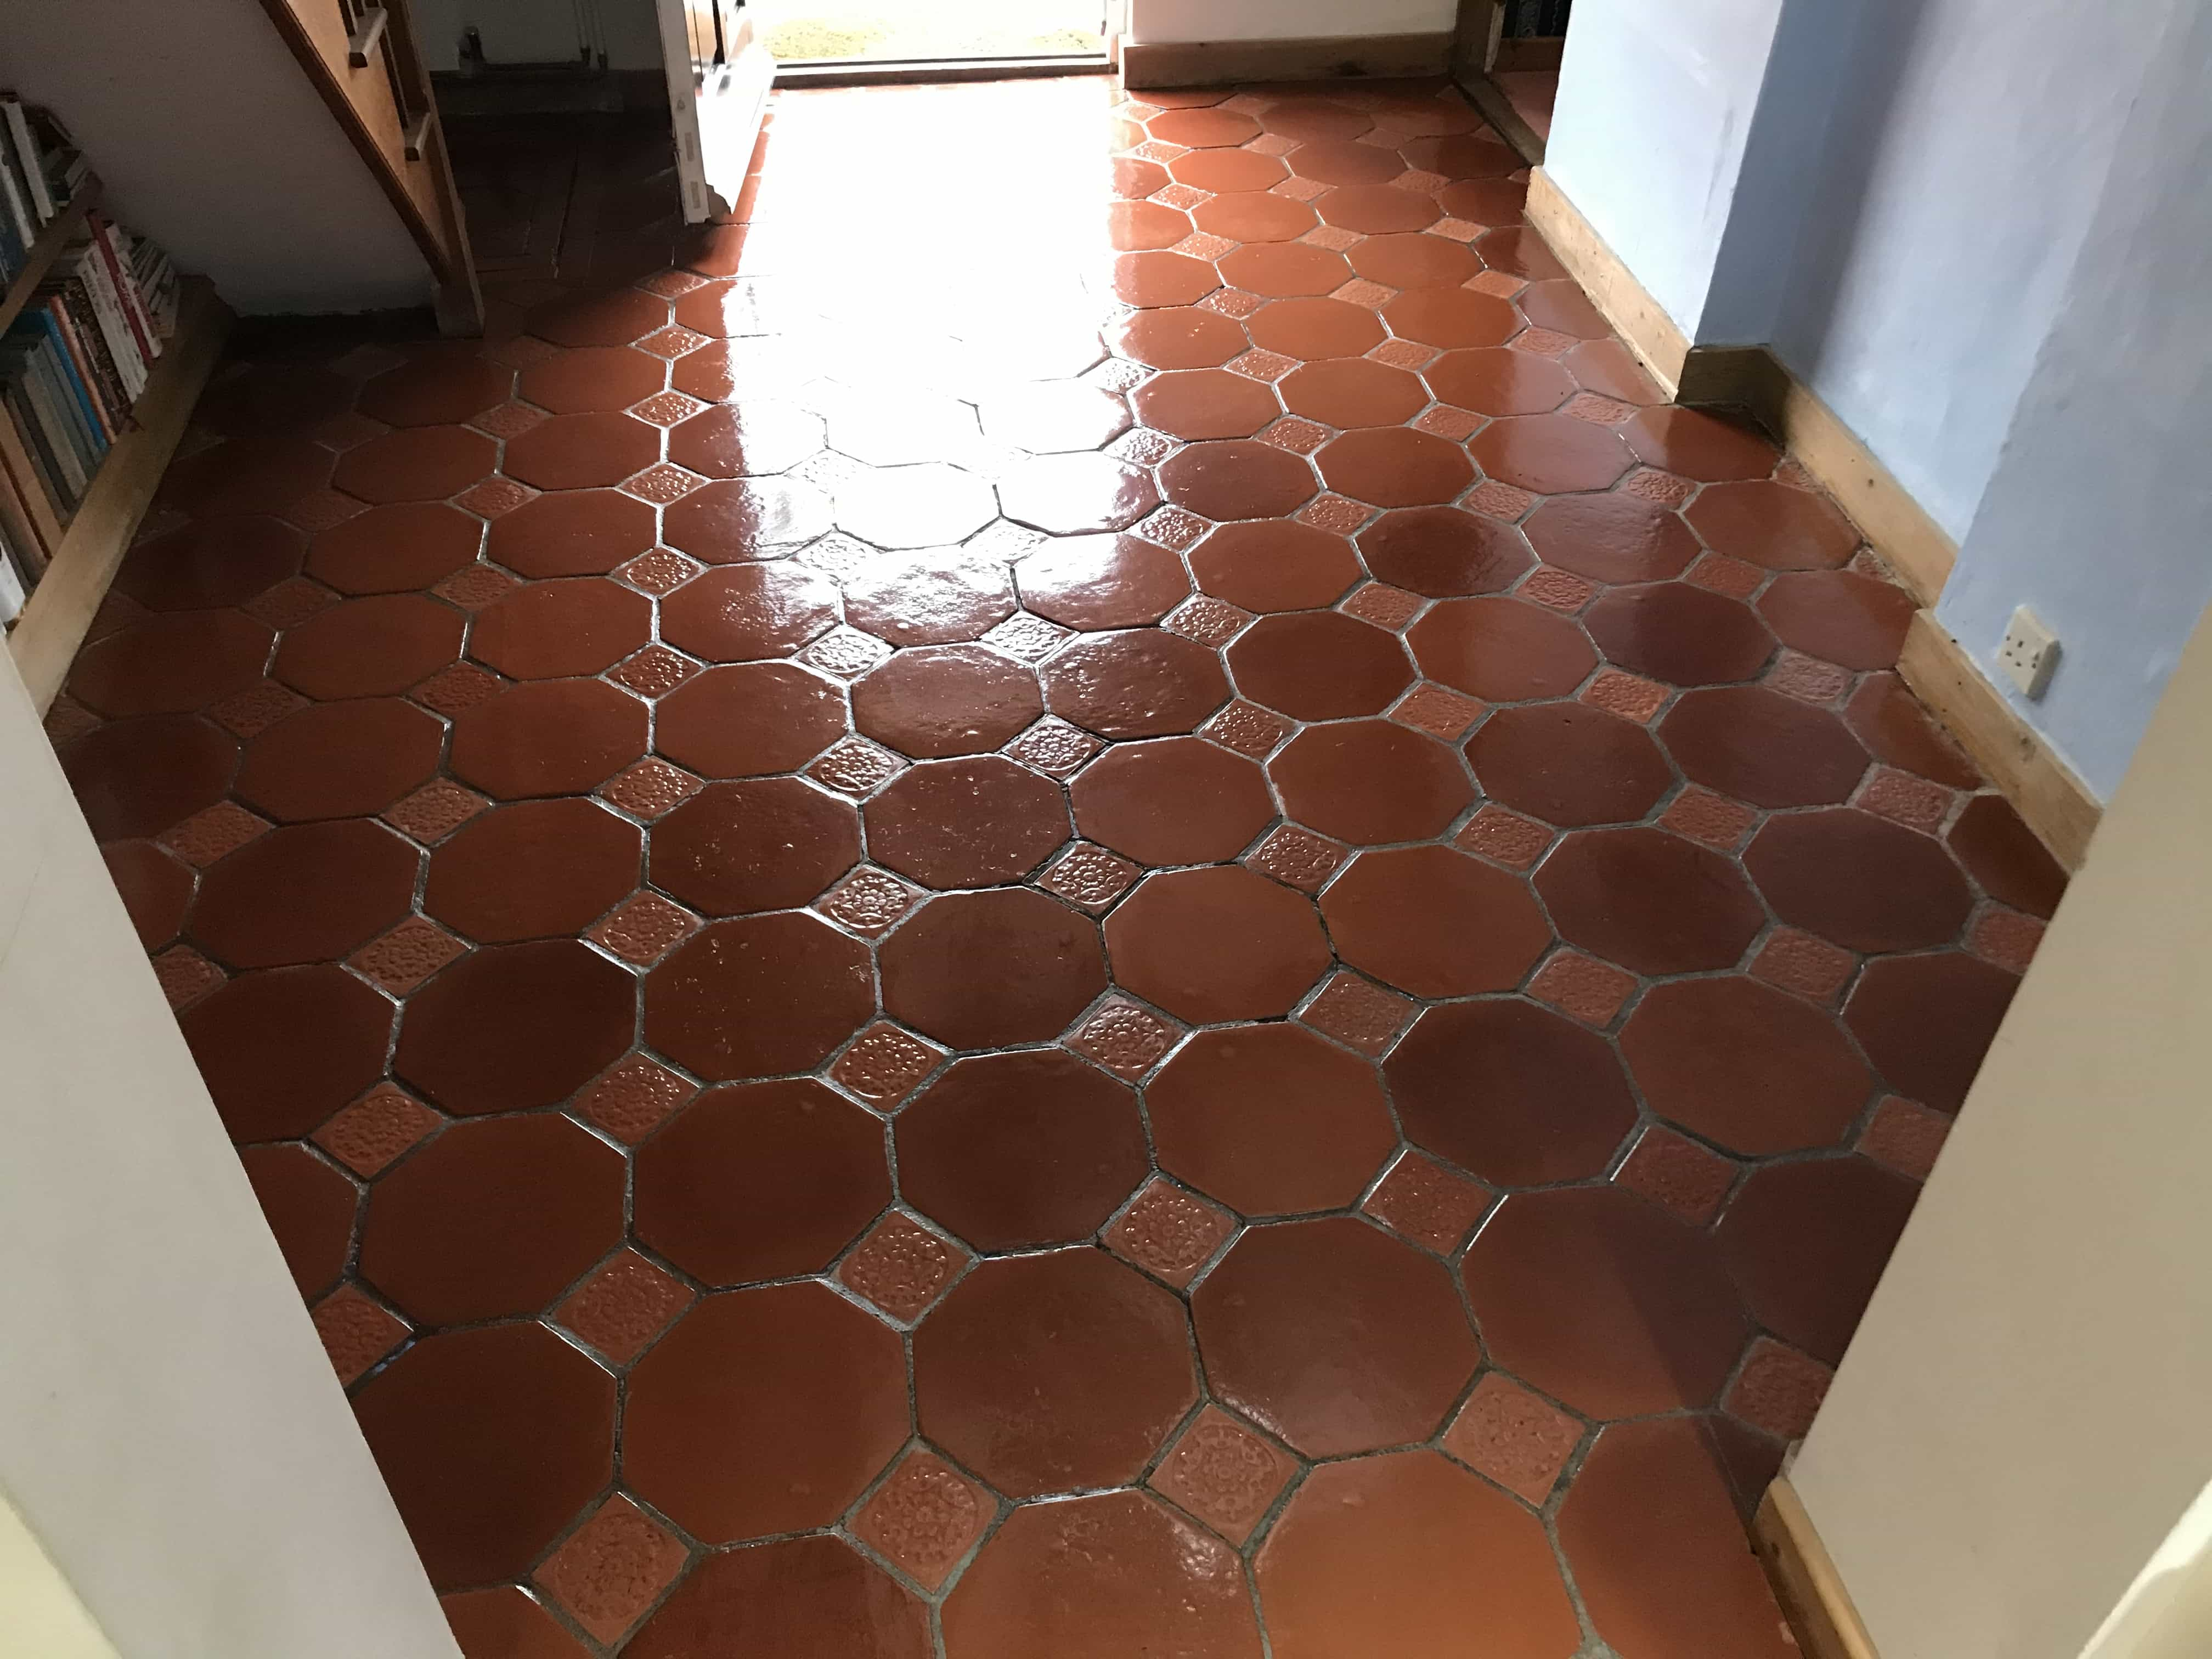 Terracotta Tiled Floor After Cleaning Crowthorne